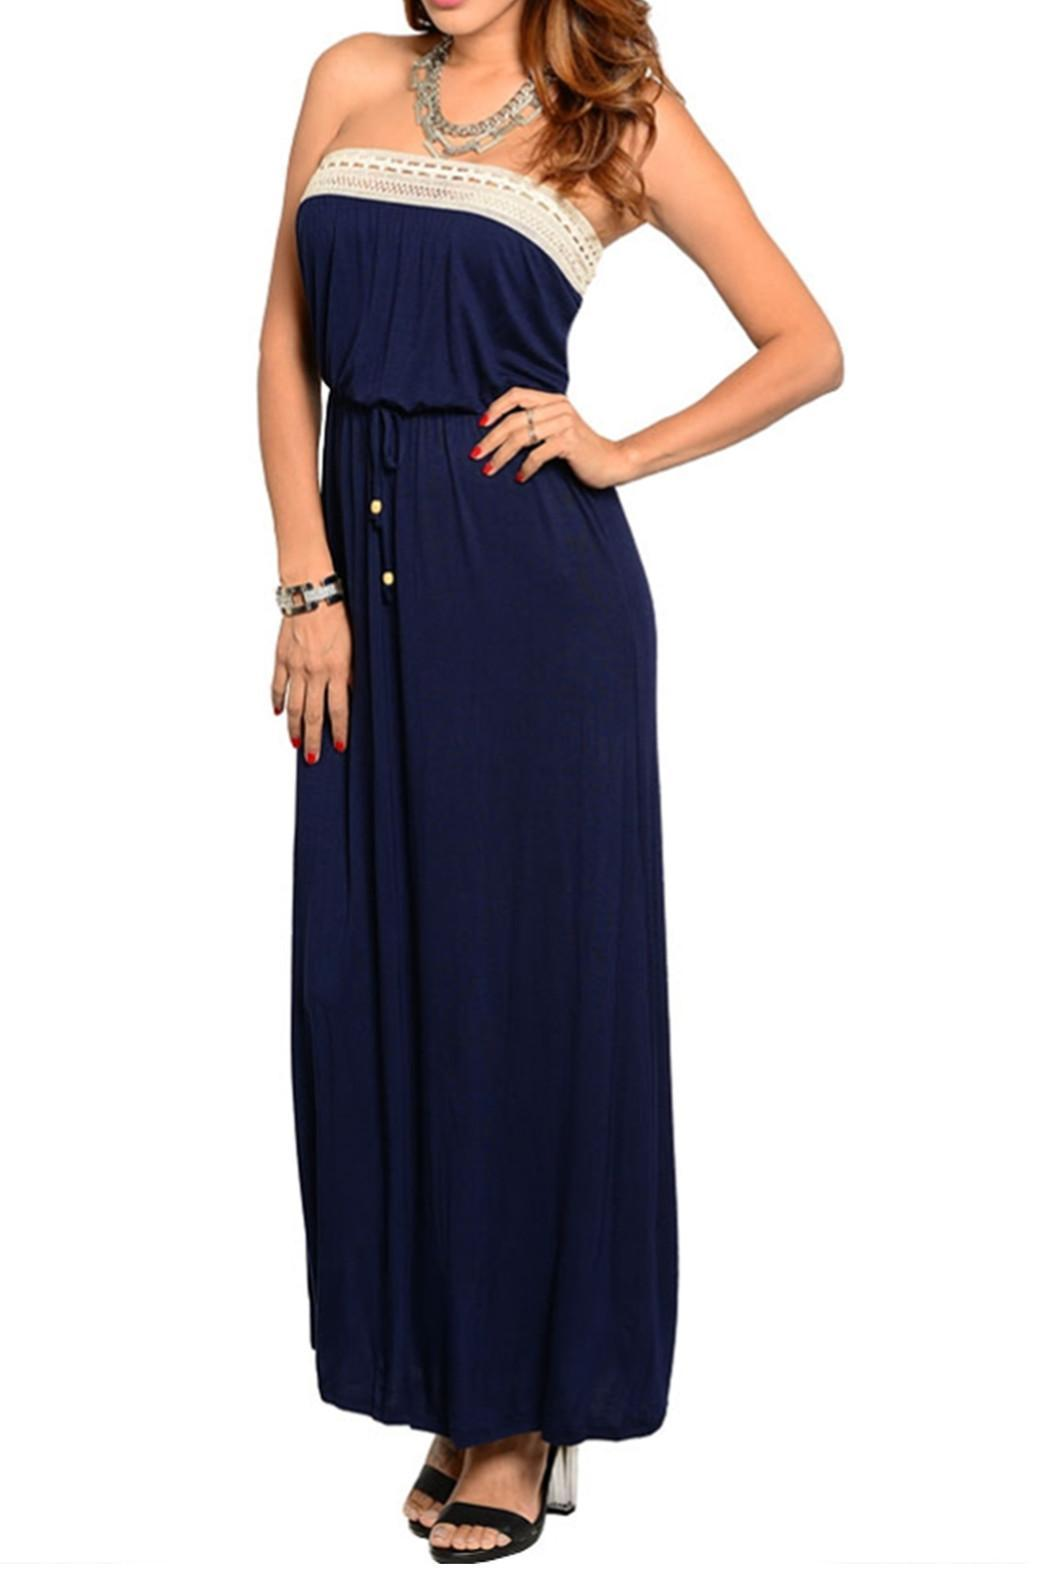 Loila Navy Maxi Dress - Main Image